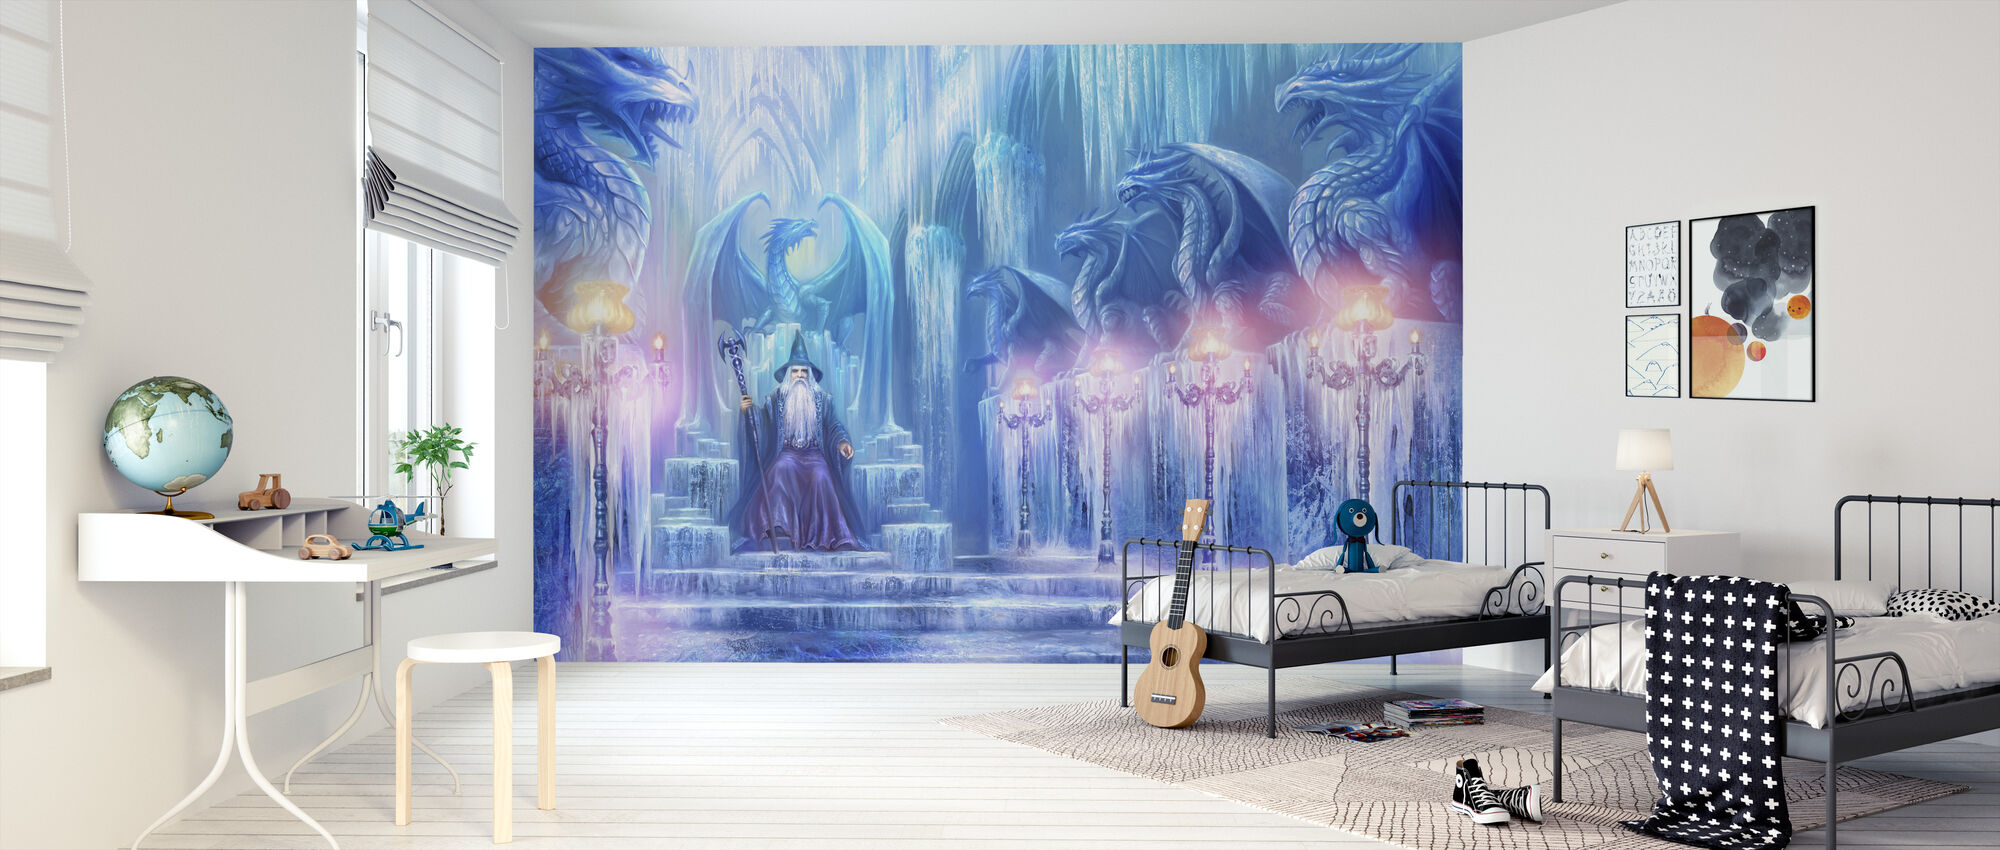 The Ice Palace - Wallpaper - Kids Room